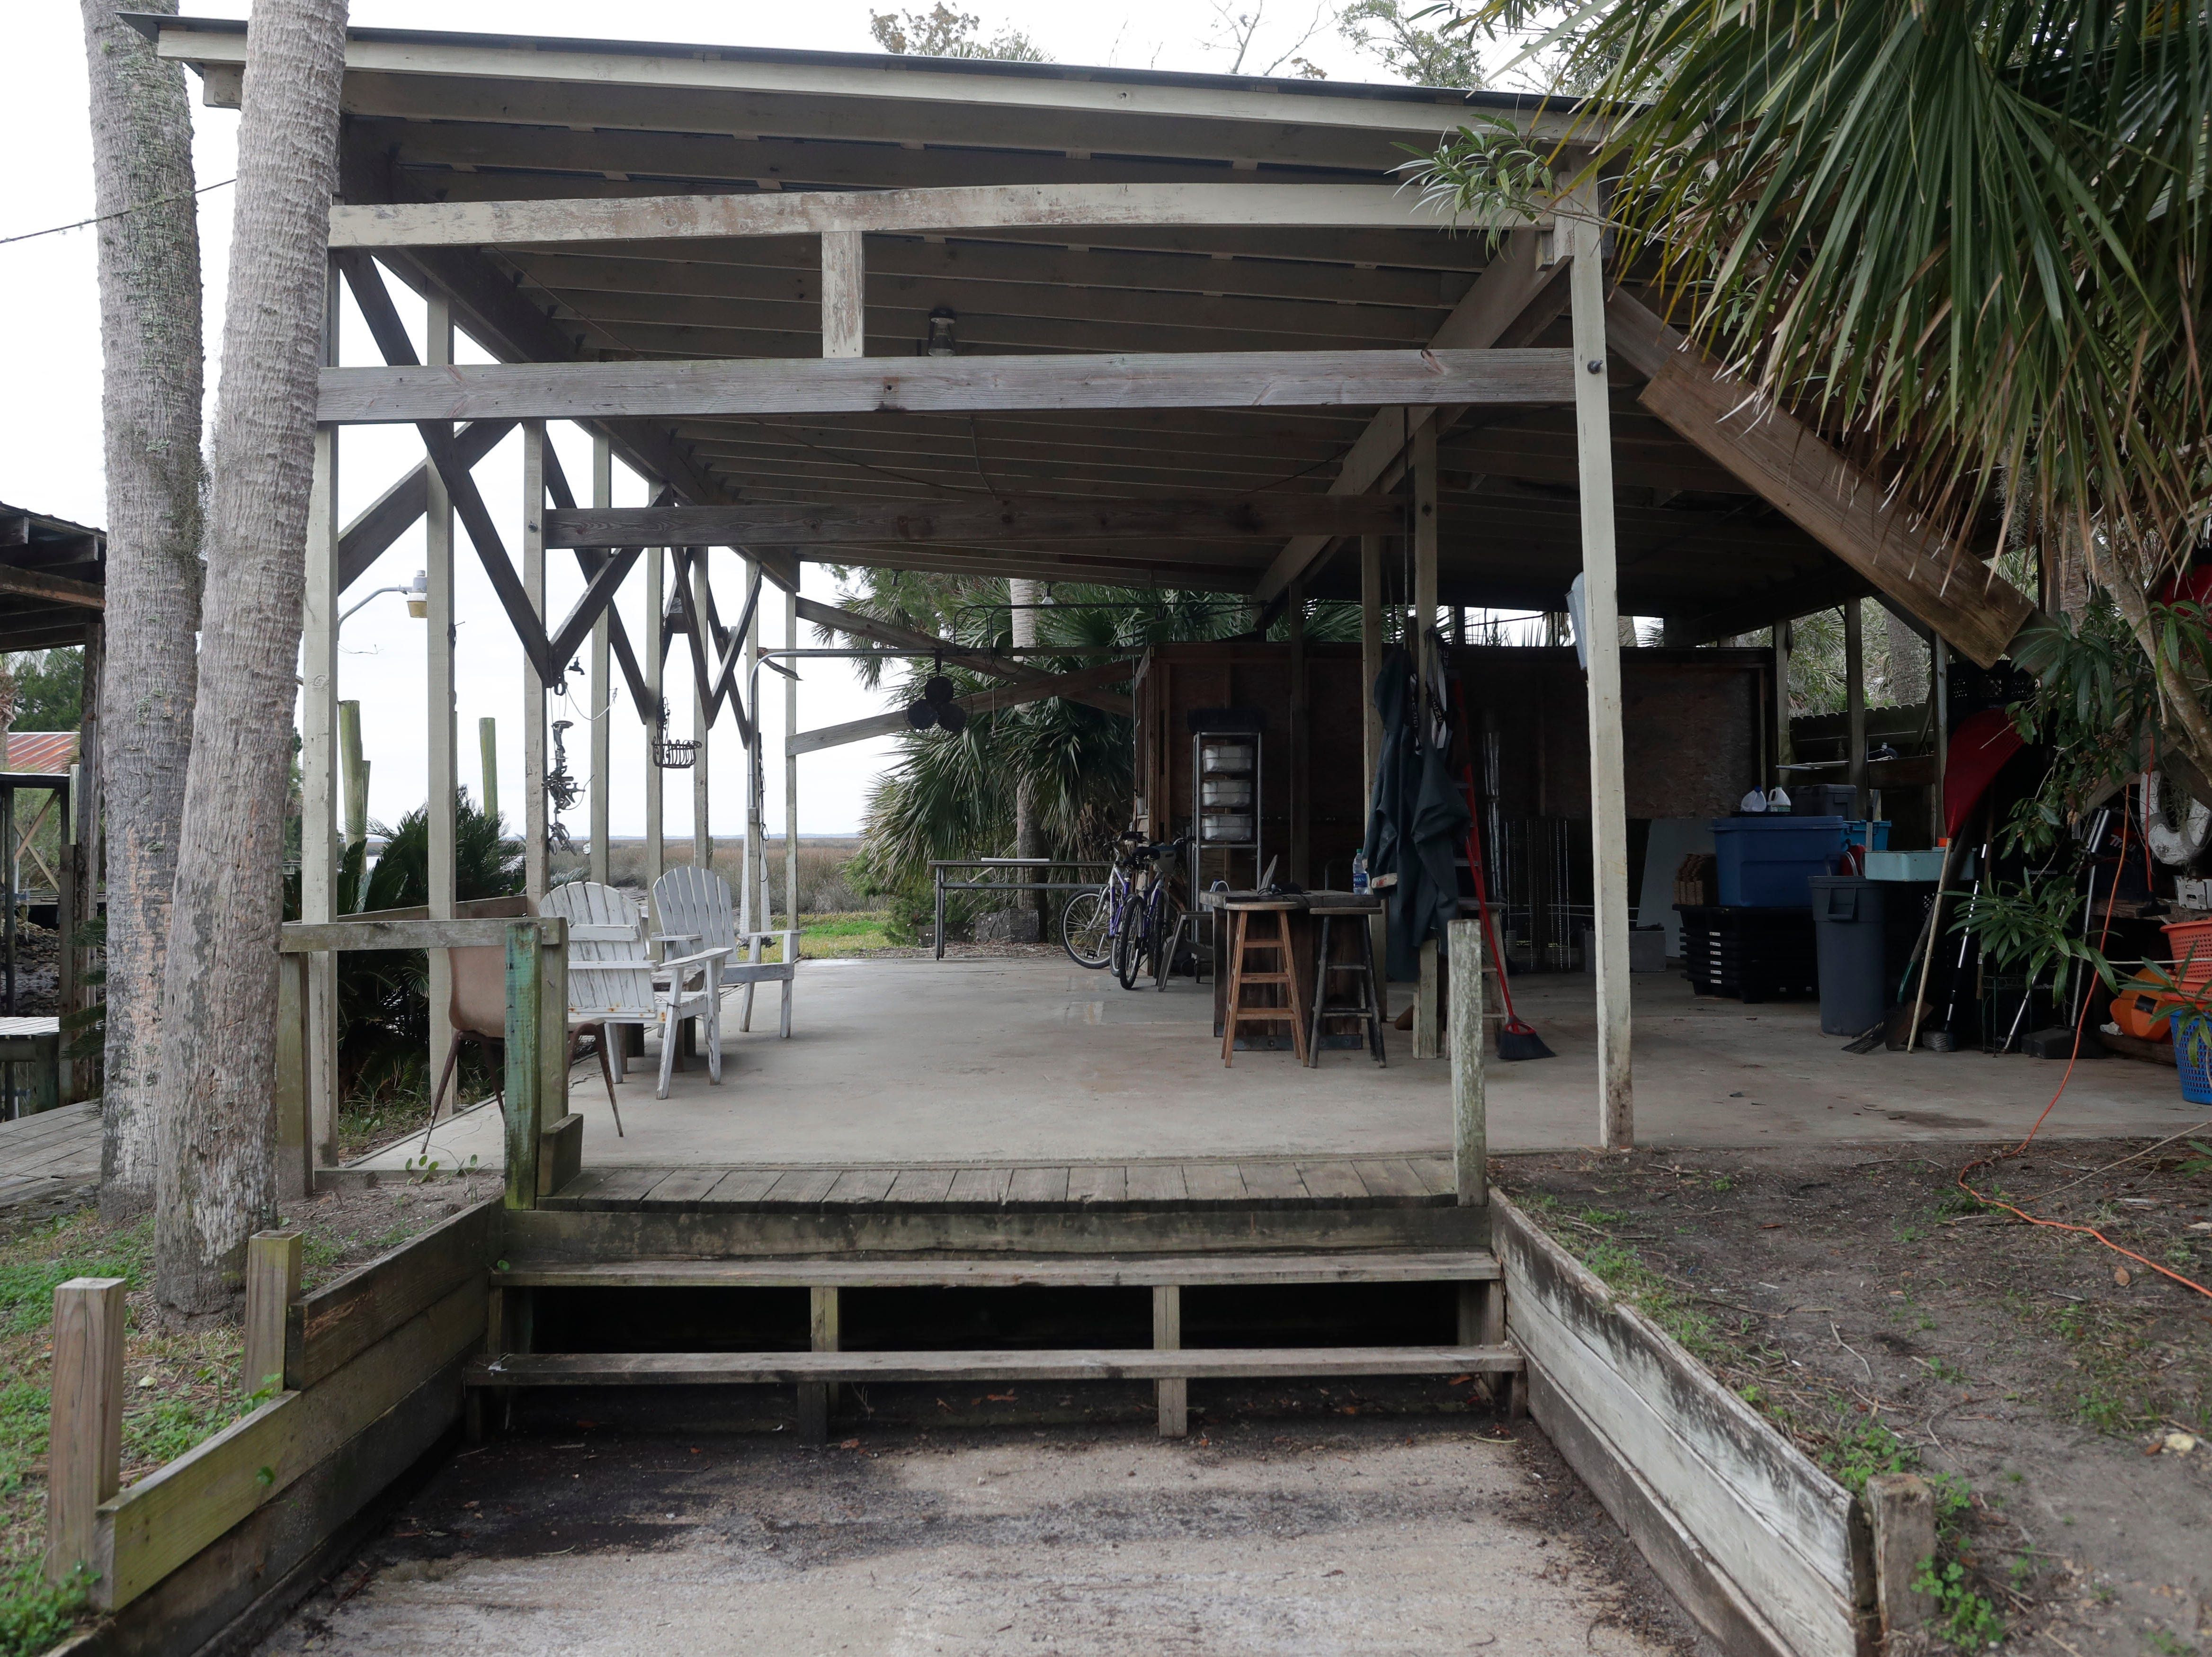 The walk-in cooler at the Spring Creek marina stands without walls, Tuesday Feb. 5, 2019. Hurricane Michael ripped through the panhandle Oct. 10, 2018.